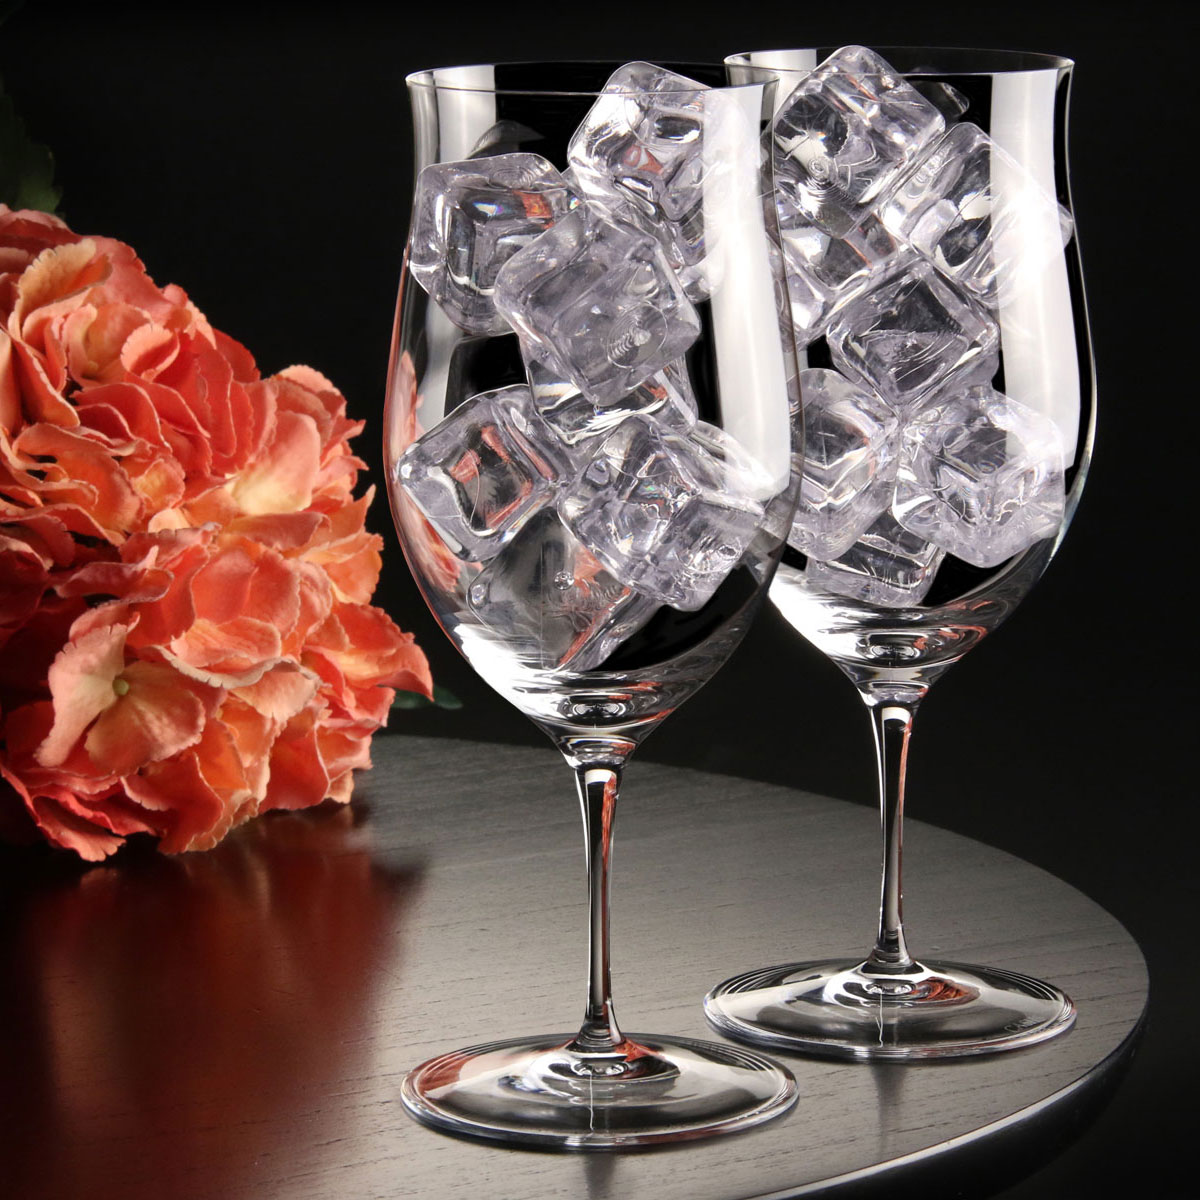 Cashs Ireland, Grand Cru Handmade Water, Soft Drinks Crystal Glasses, Pair